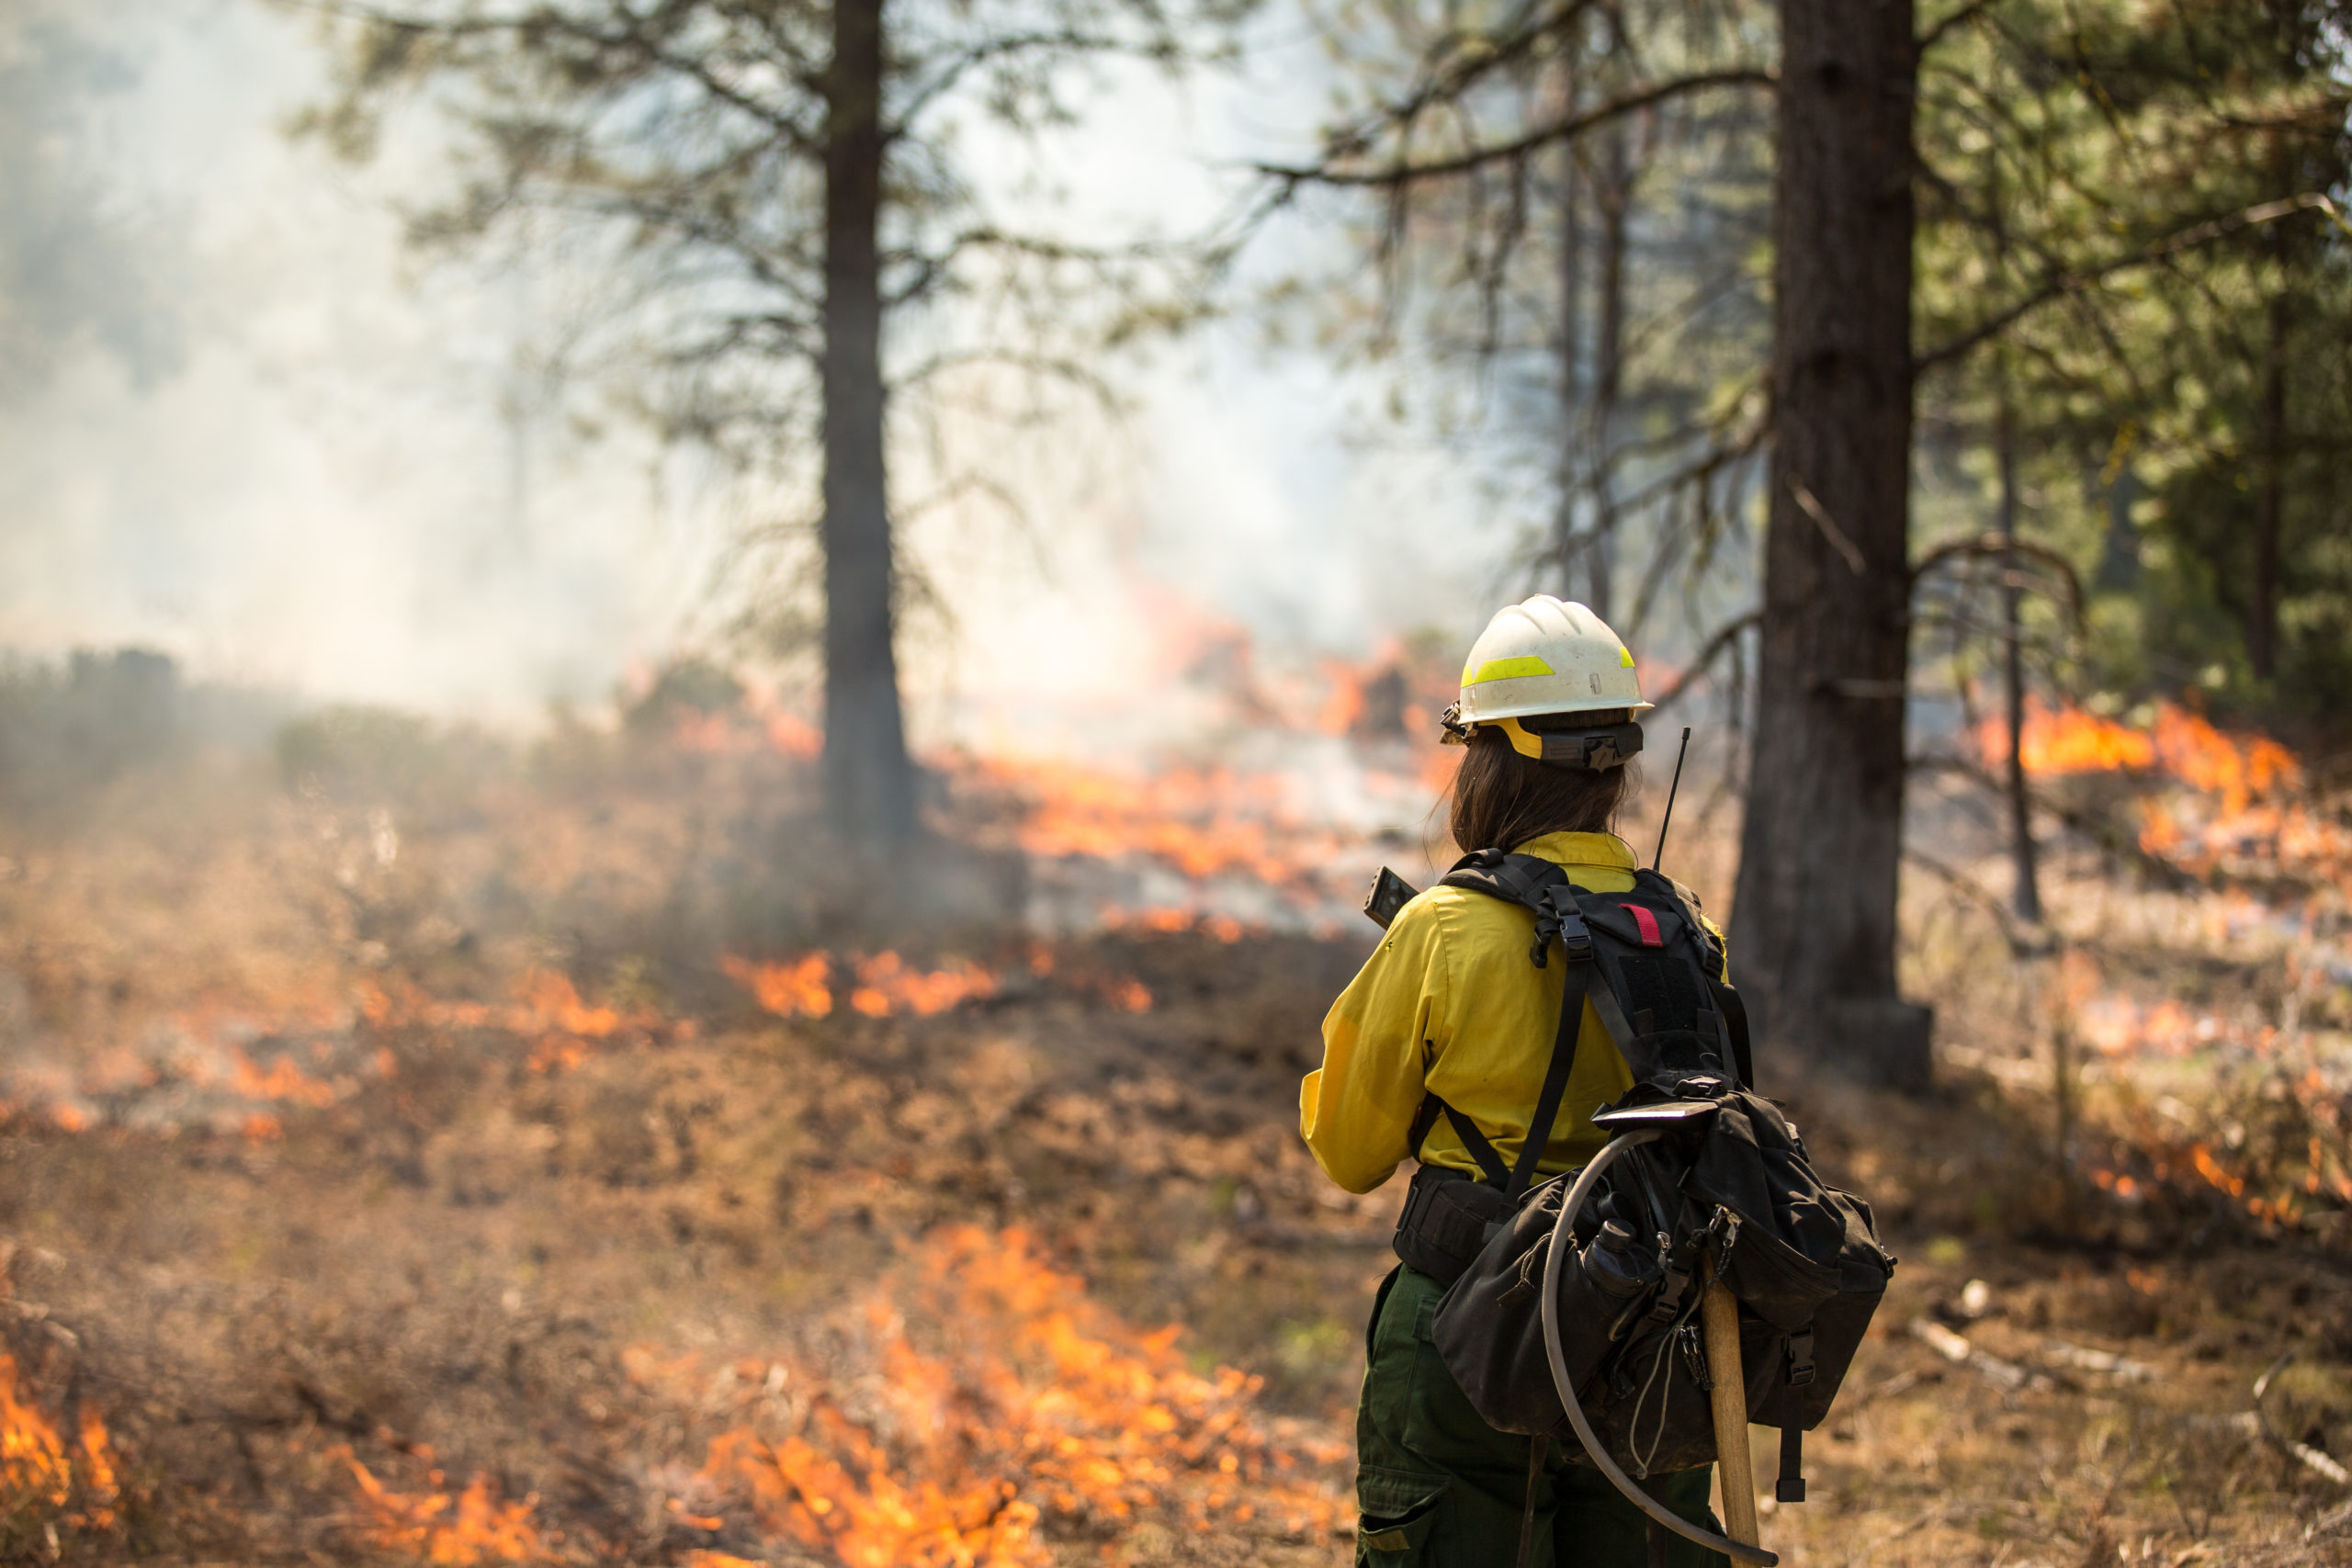 Heroes of the Week: Firefighters Fighting Wildfires